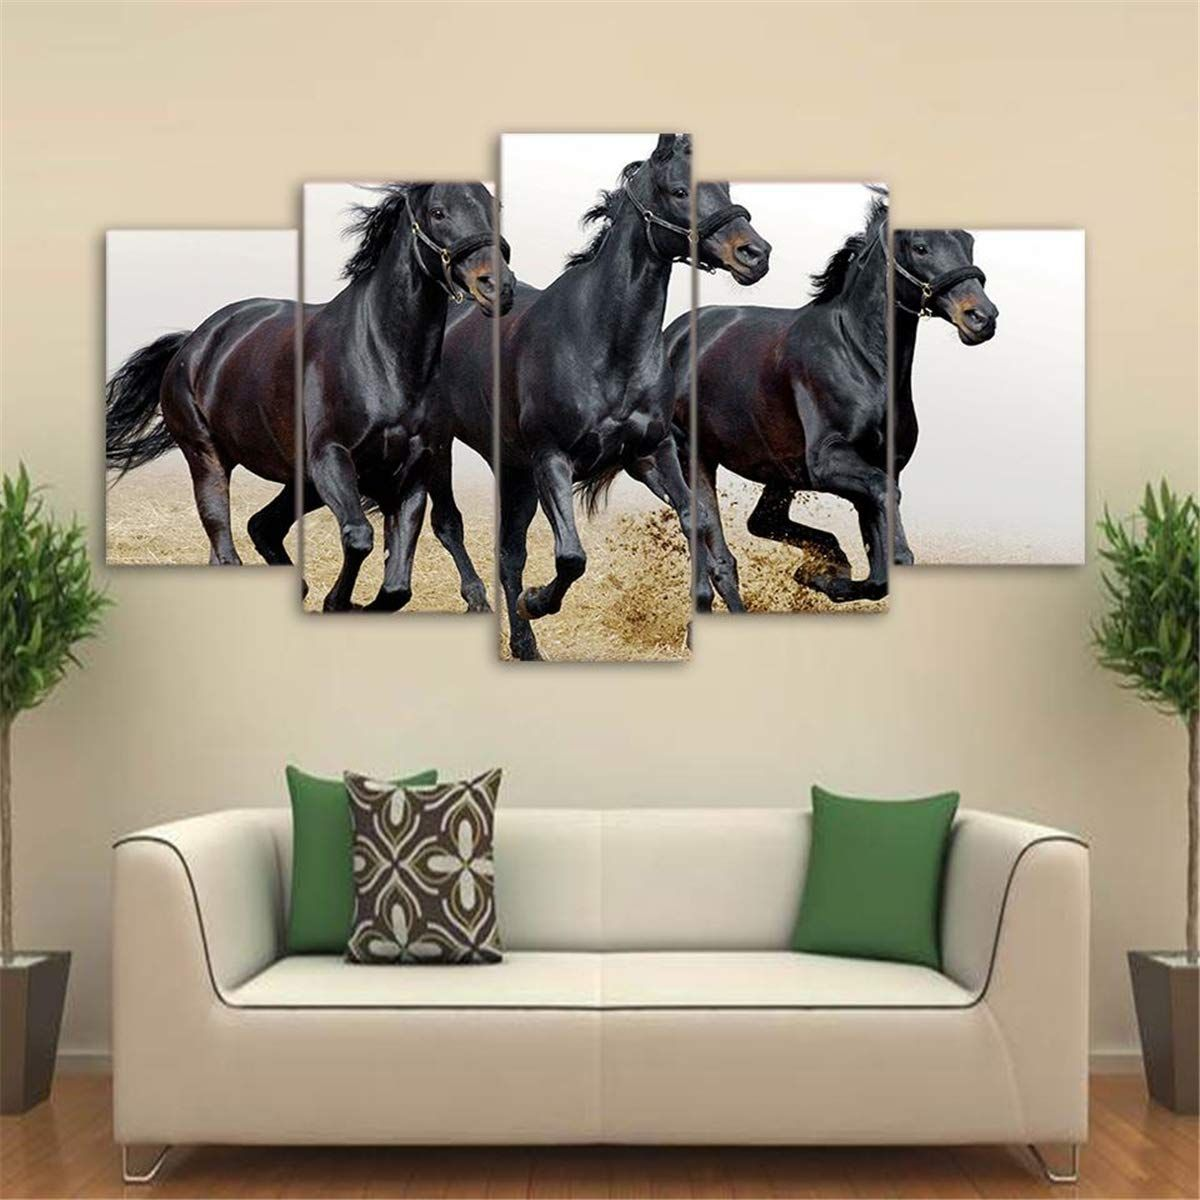 Jesc 3 Black Horses Painting Running Gallop On The Canvas Wall Art 5 Piece Canvas Art Horse Wall Art Canvases Framed Wall Art